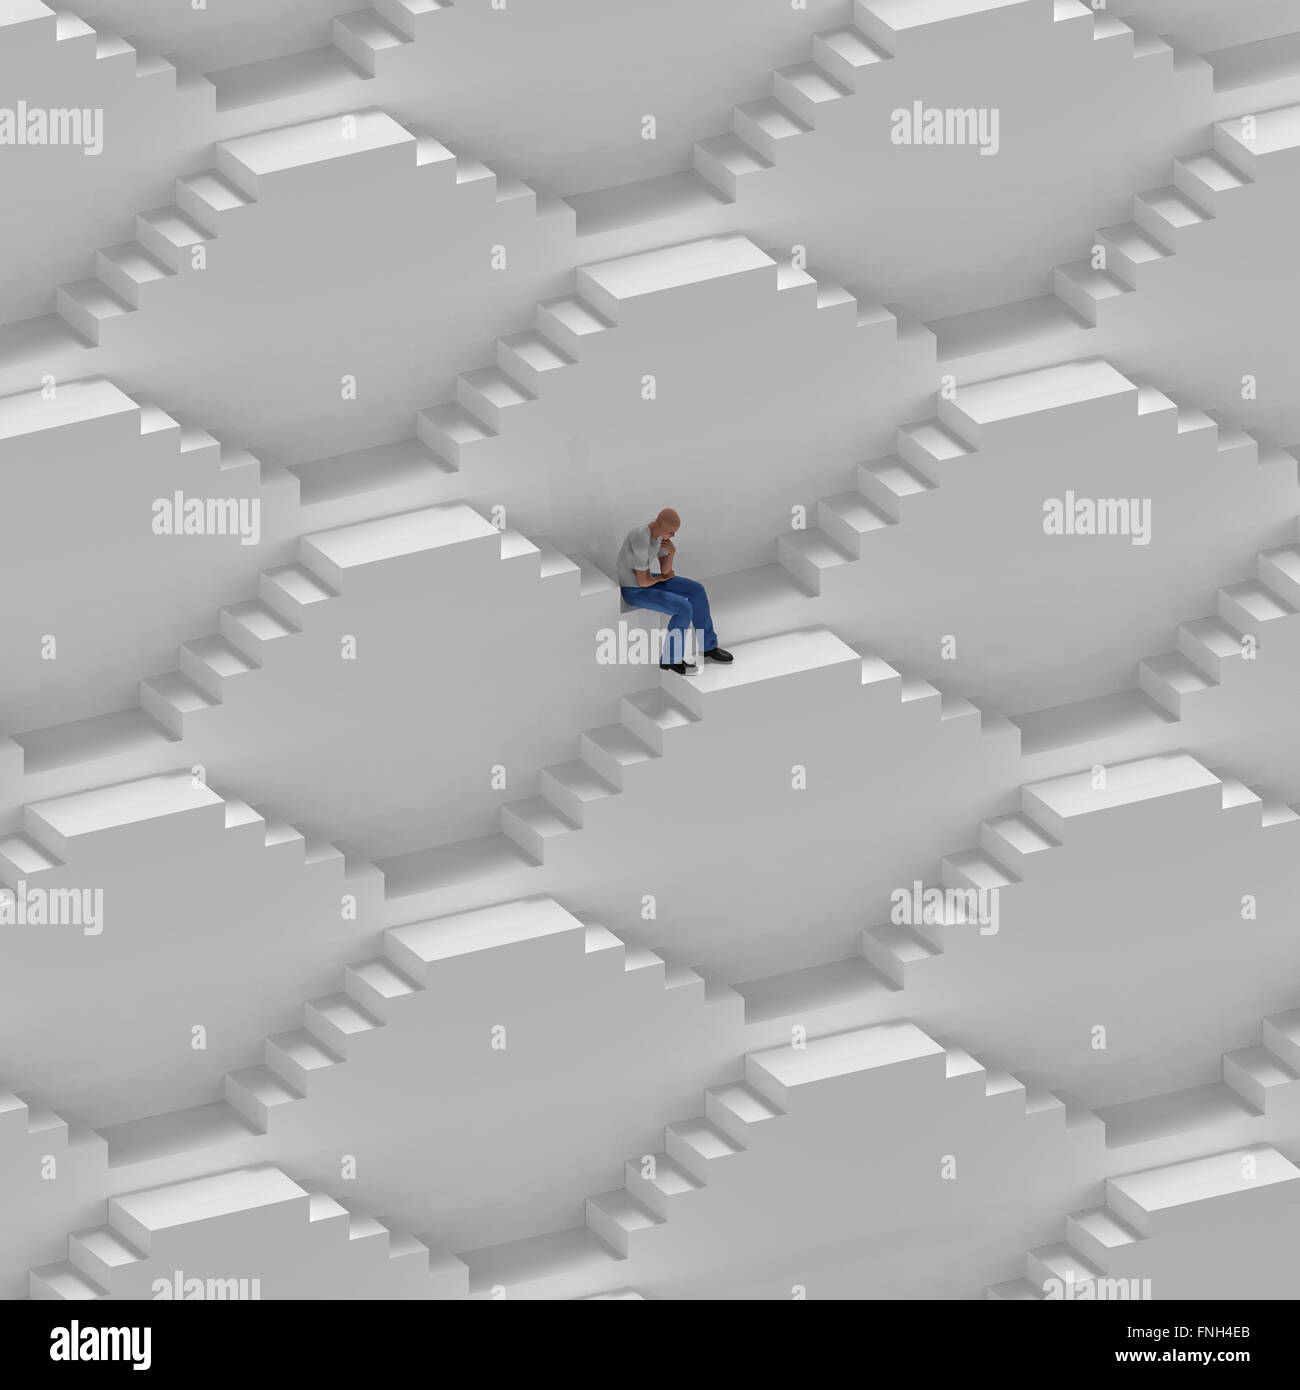 man sitting on the endless stairs - Stock Image